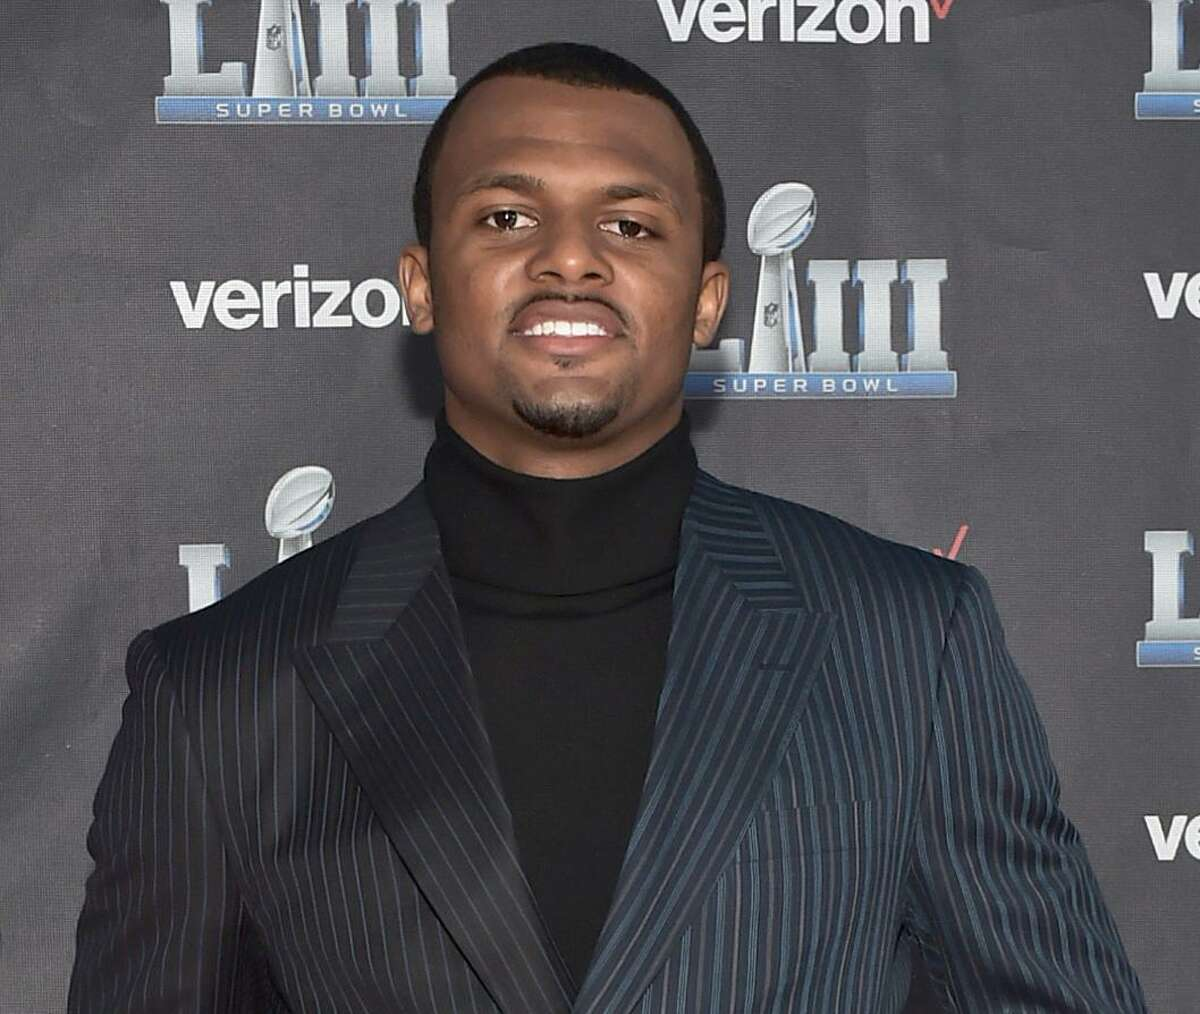 Deshaun Watson got dressed up for the premiere of the documentary